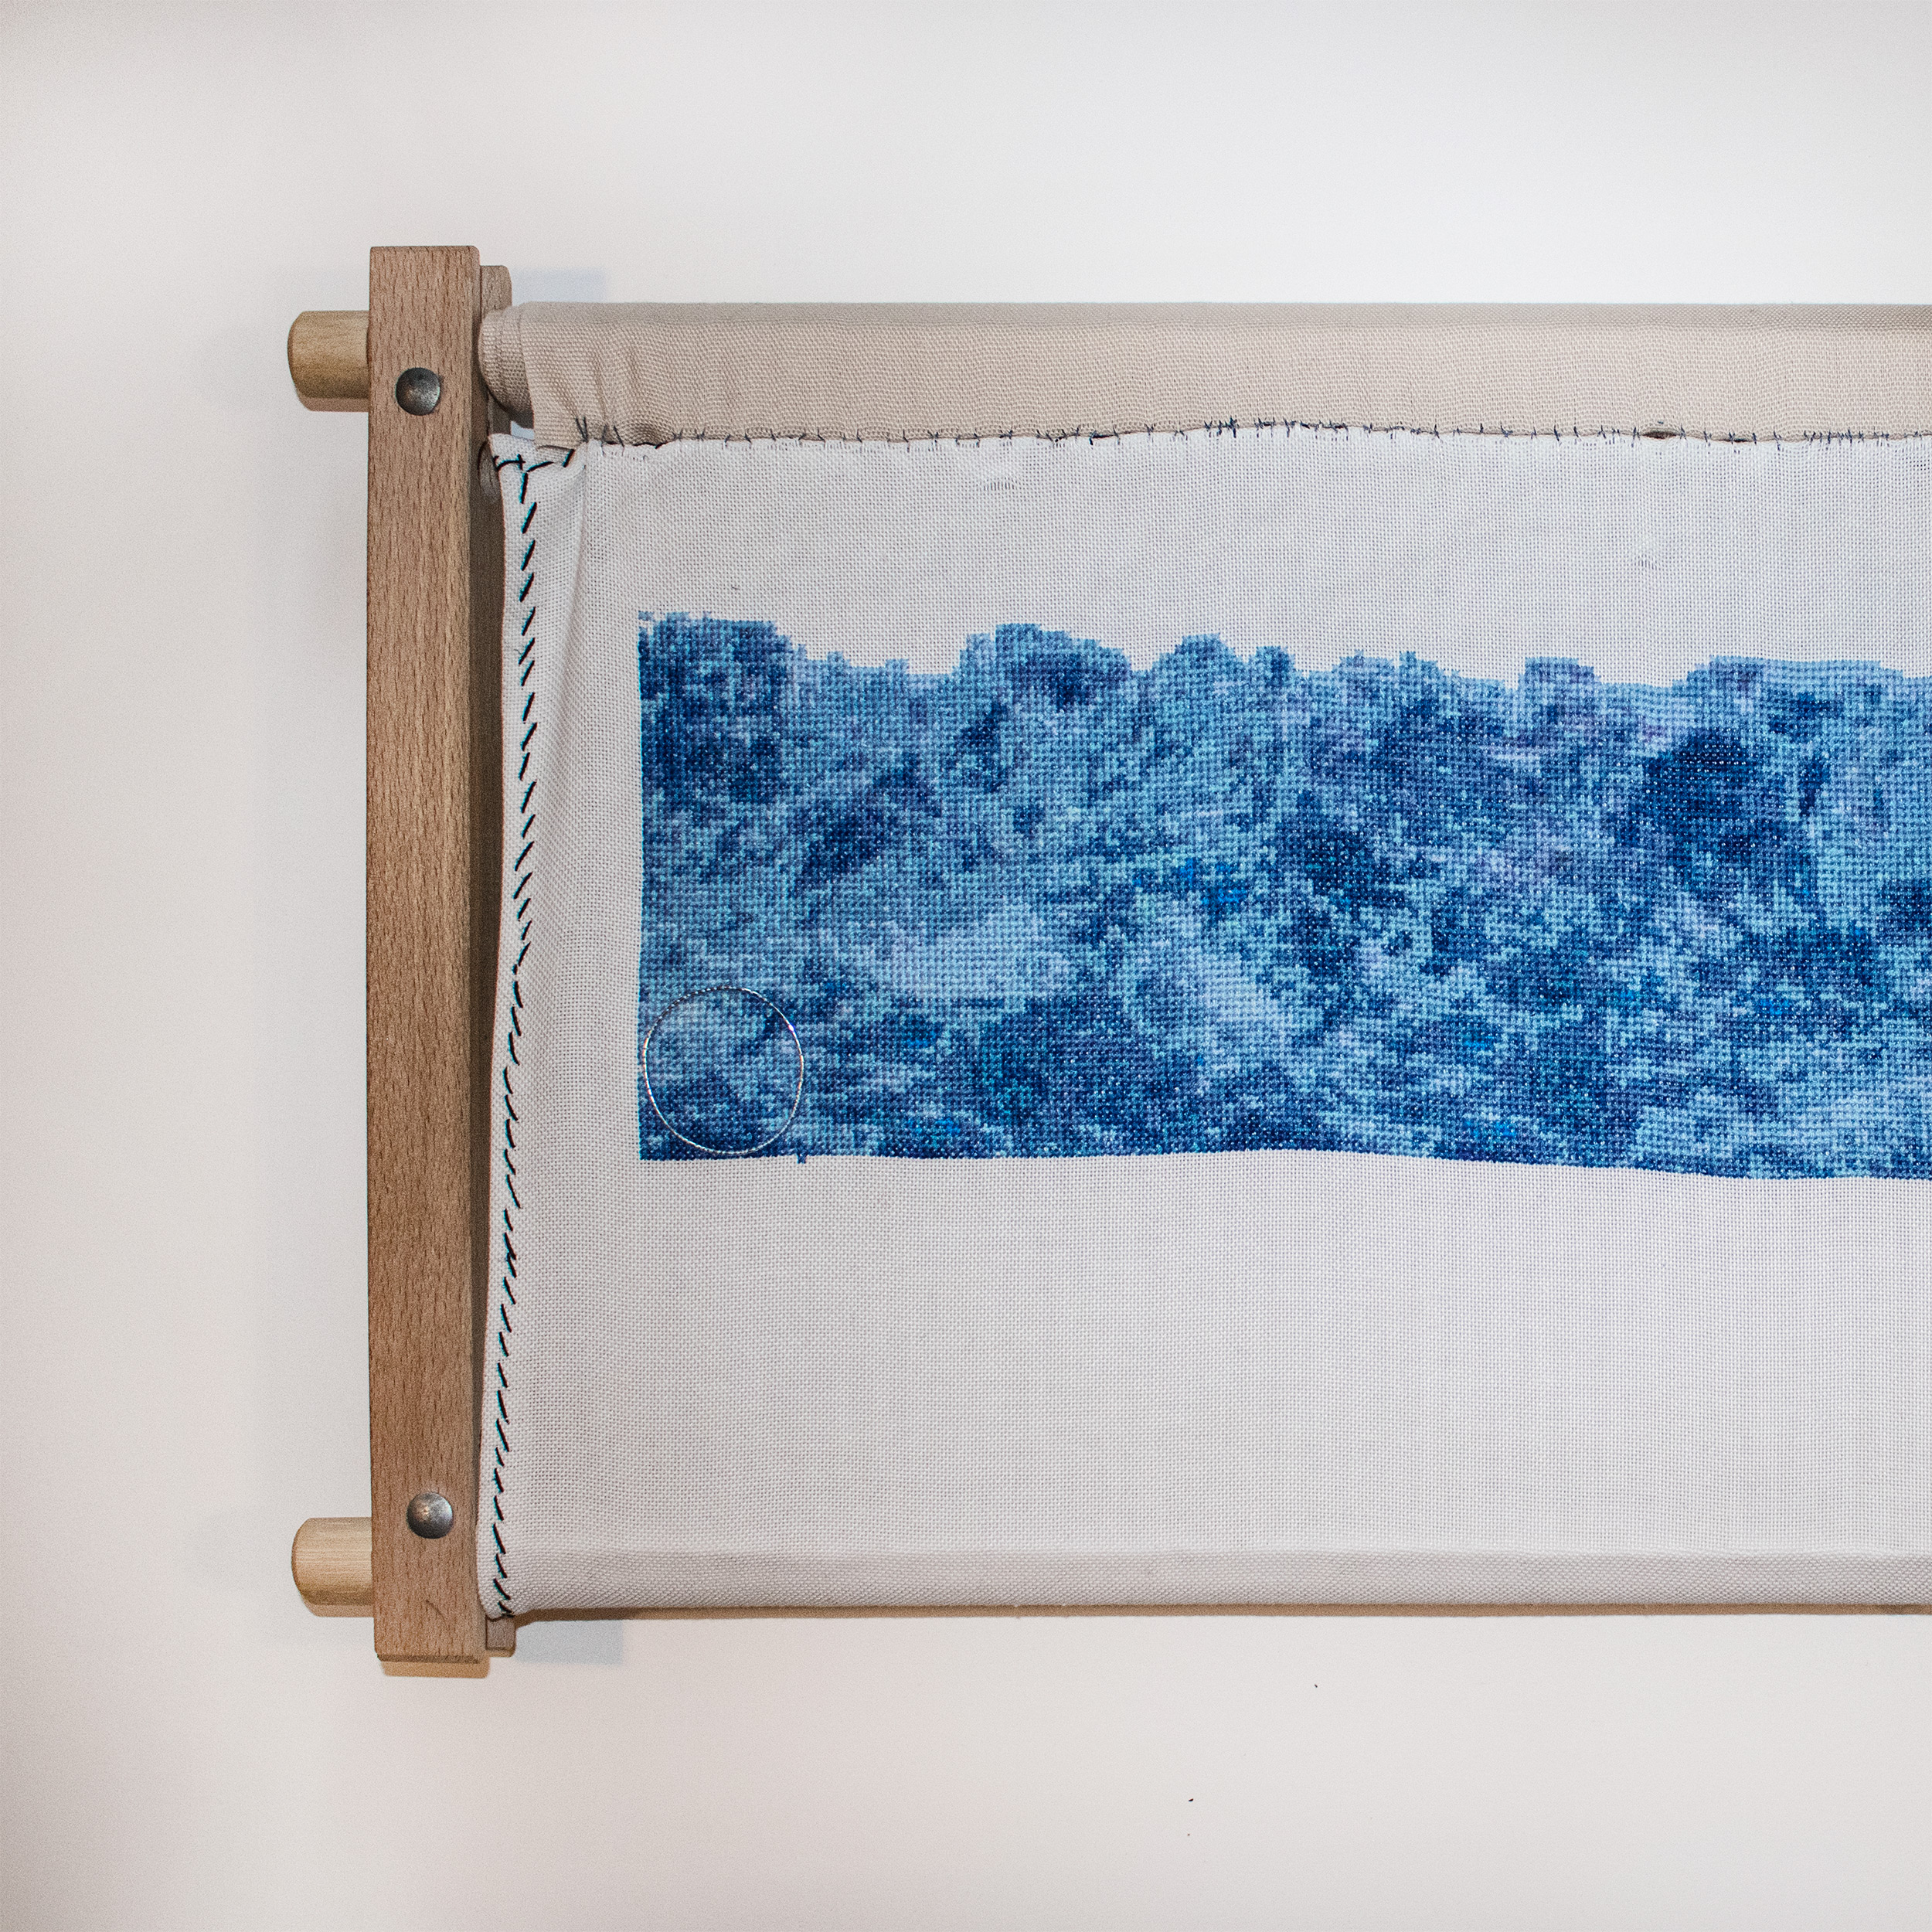 Svalbard Glacier recreated in cross stitch